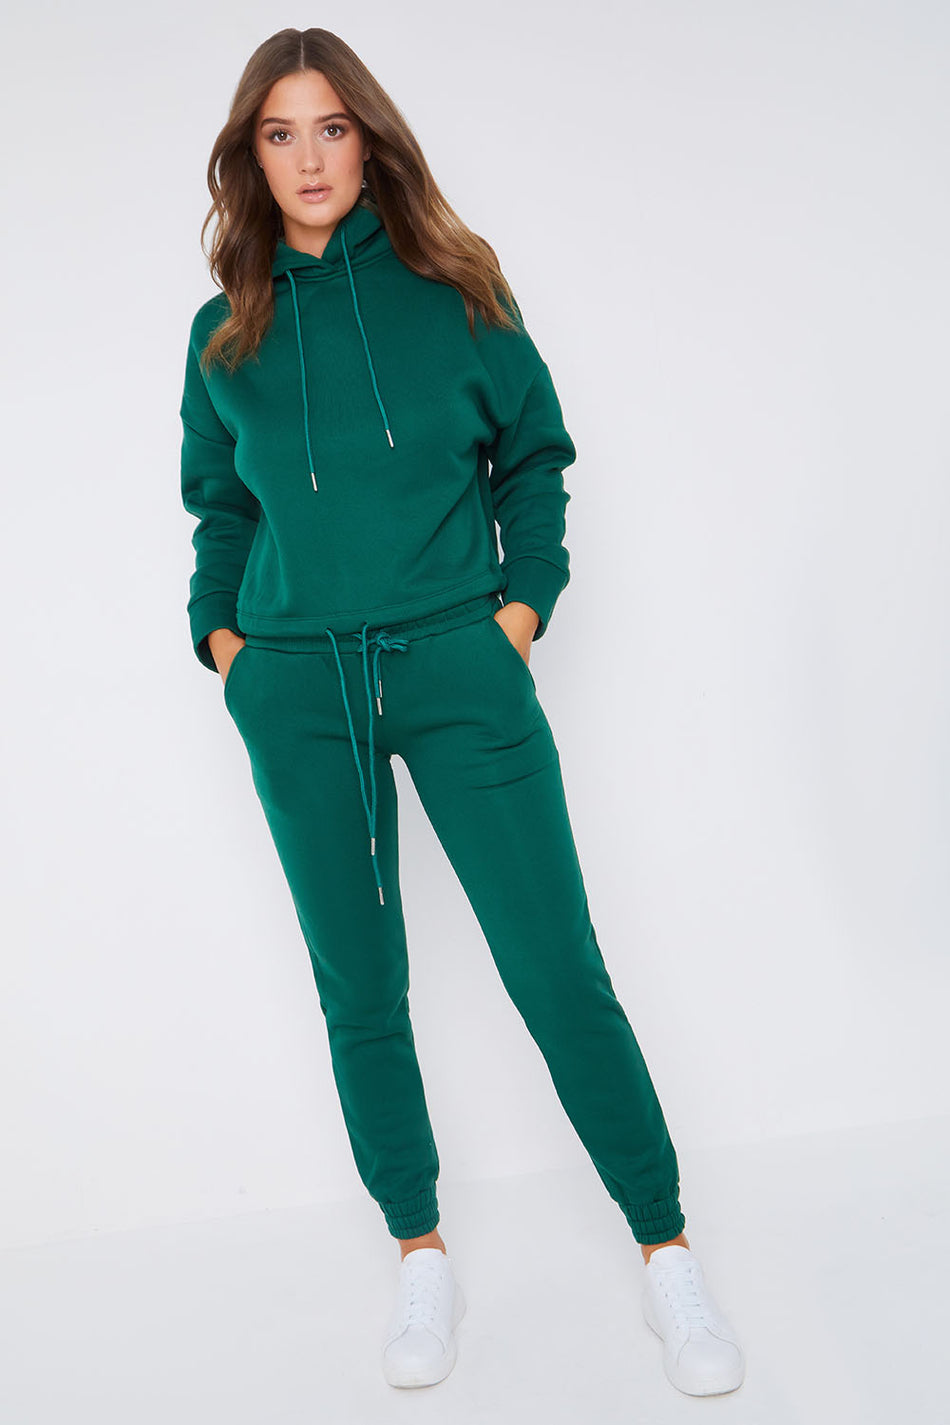 Emeral Green Loungewear Trainingsanzug